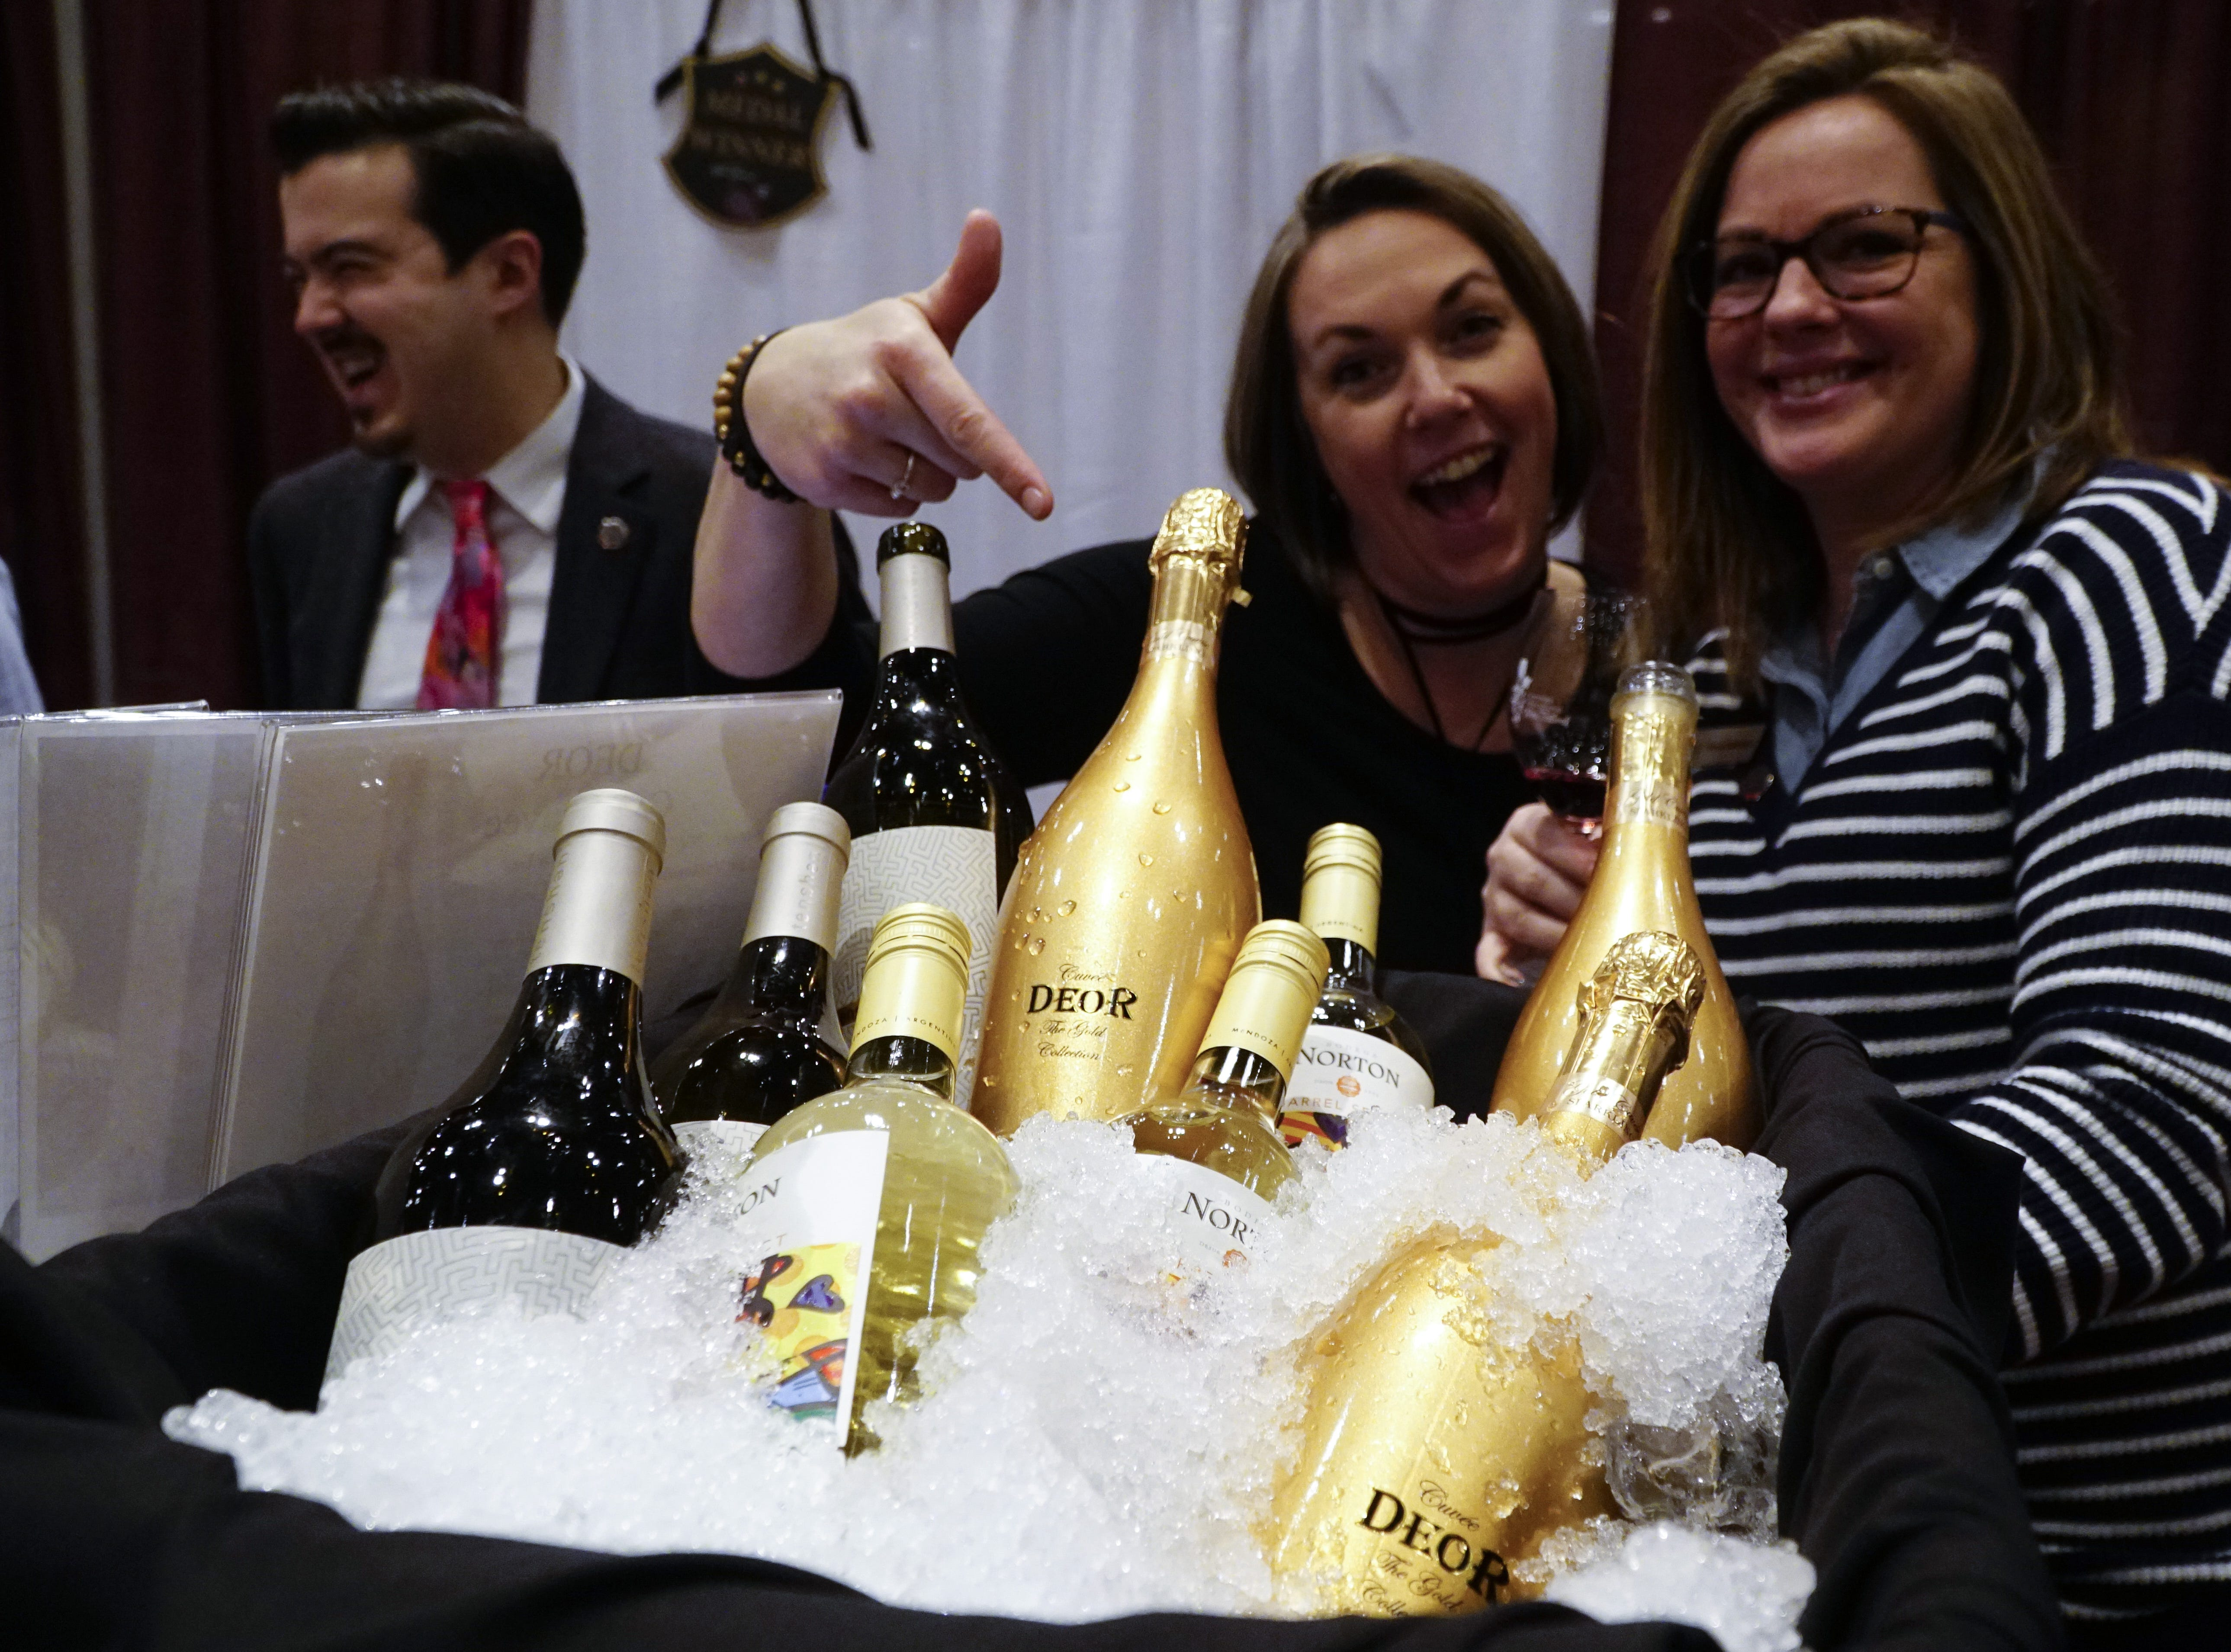 Kara York and Nikki Mulholland of Wine Trends, an Ohio artisanal wine distributor, pose next to a case of Deor, an Italian sparkling wine at The Cincinnati International Wine Festival, March 9, 2019.